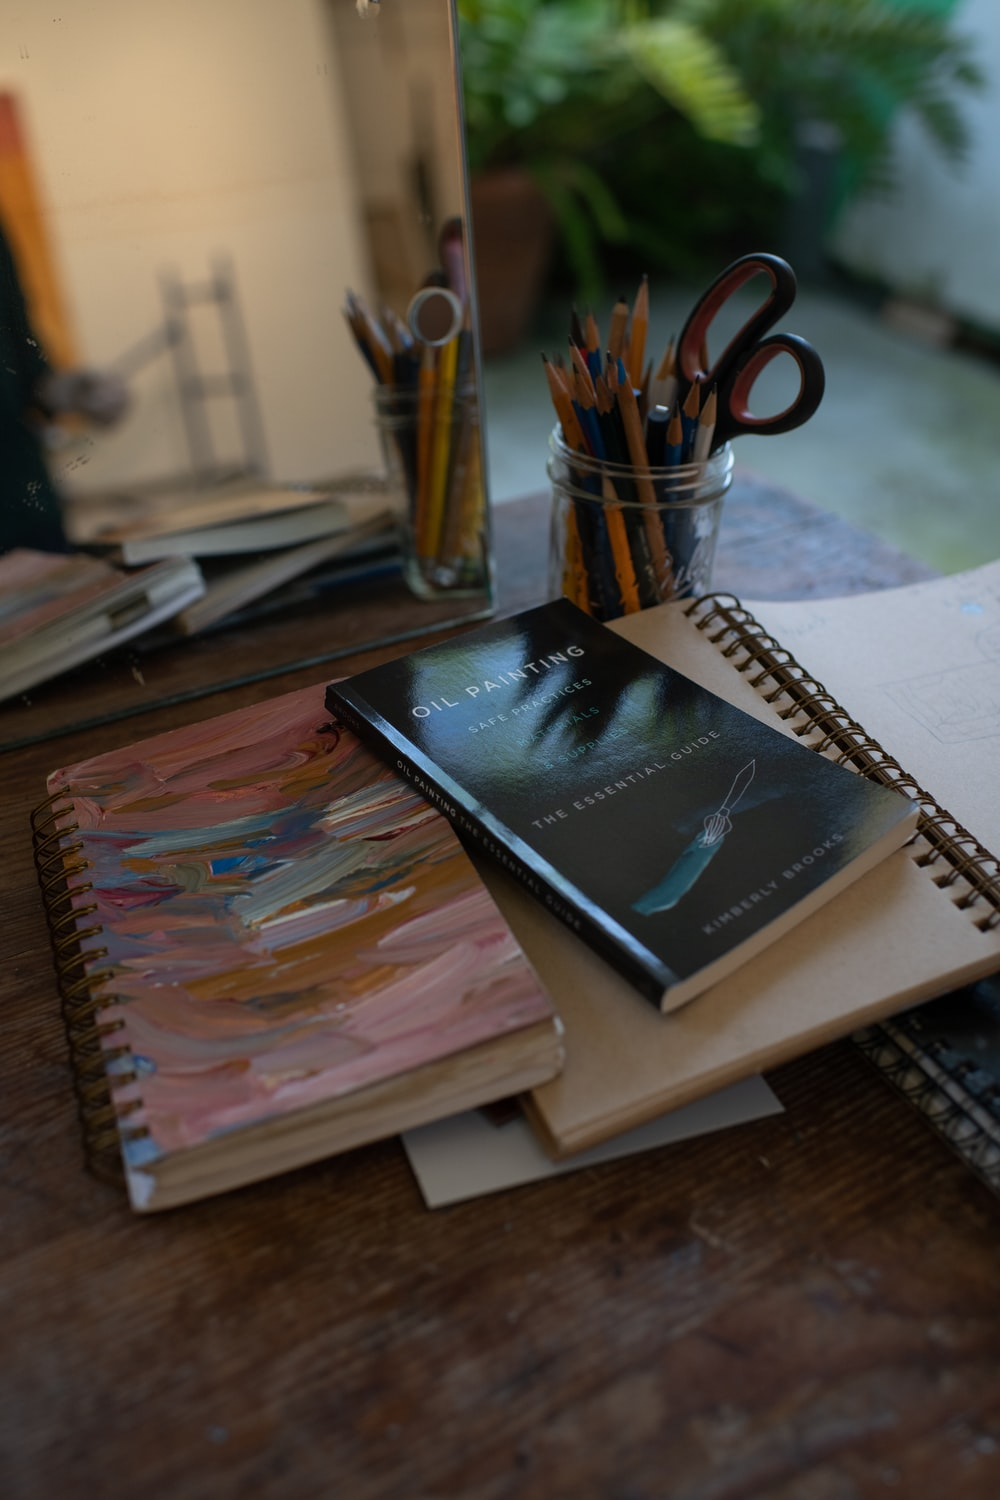 black book on brown wooden table